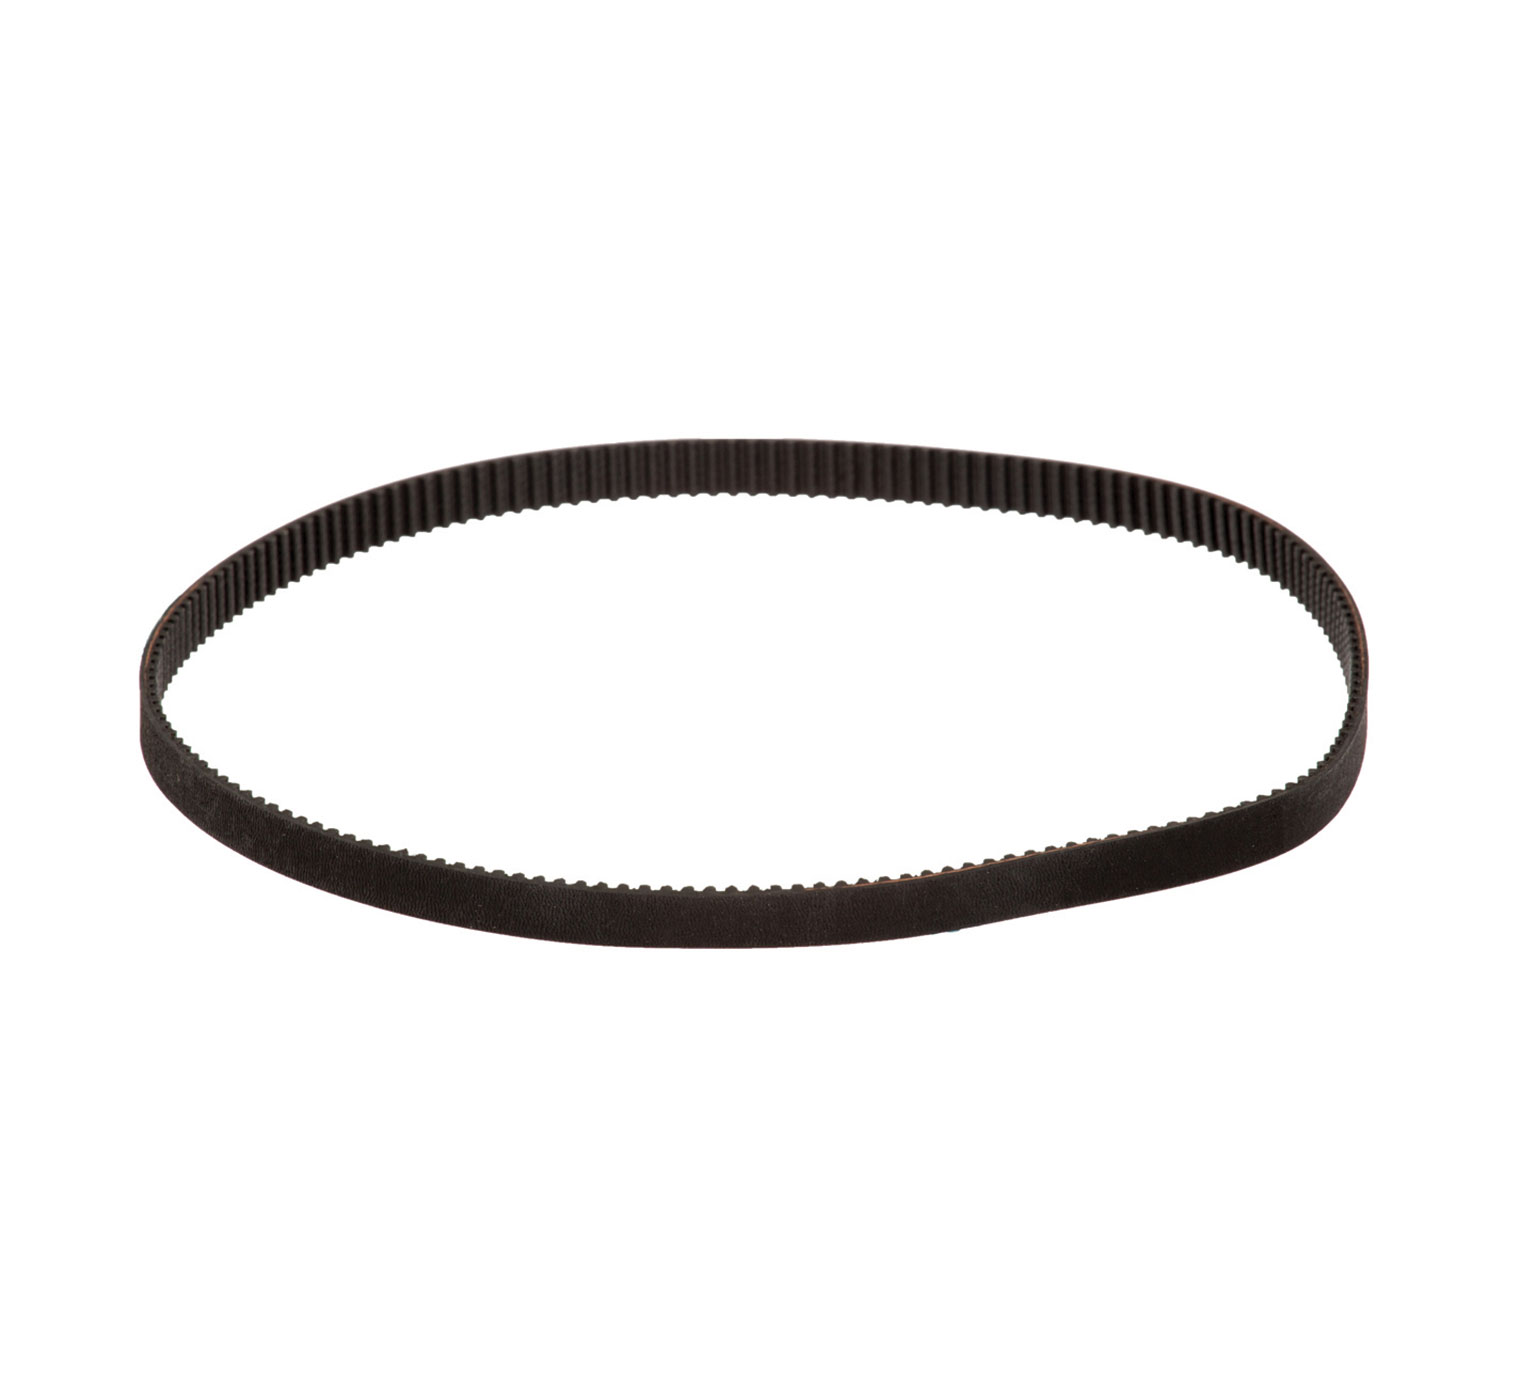 1001045 V-Belt Brush Belt - 20.9 x 0.35 in alt 1